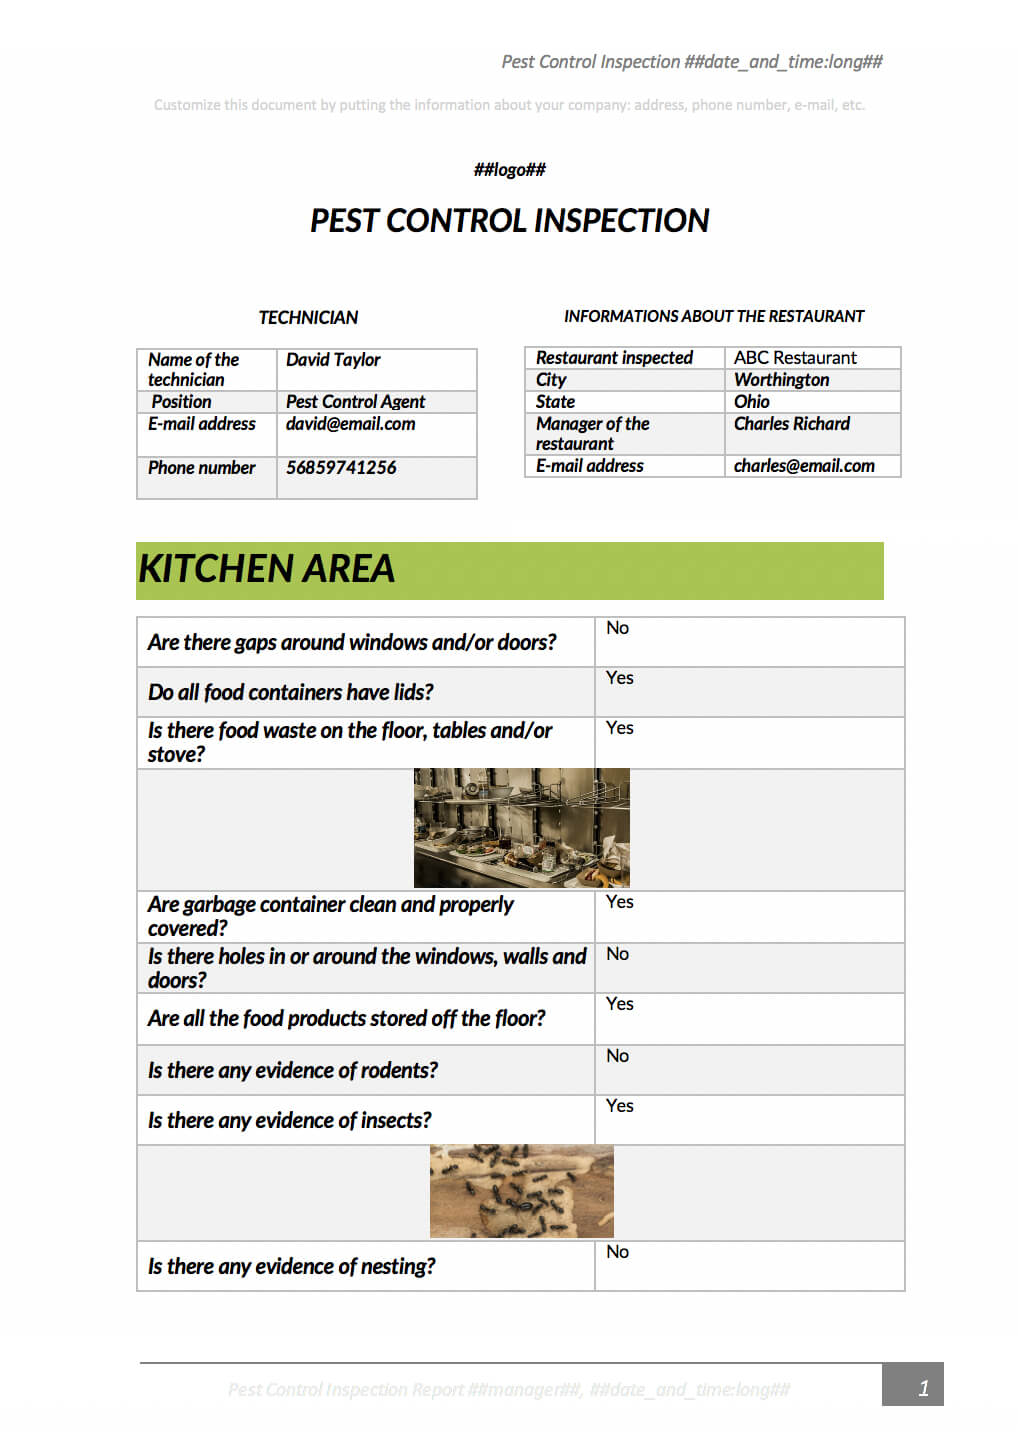 Pest Control Inspection With Kizeo Forms From Your Cellphone Throughout Pest Control Inspection Report Template